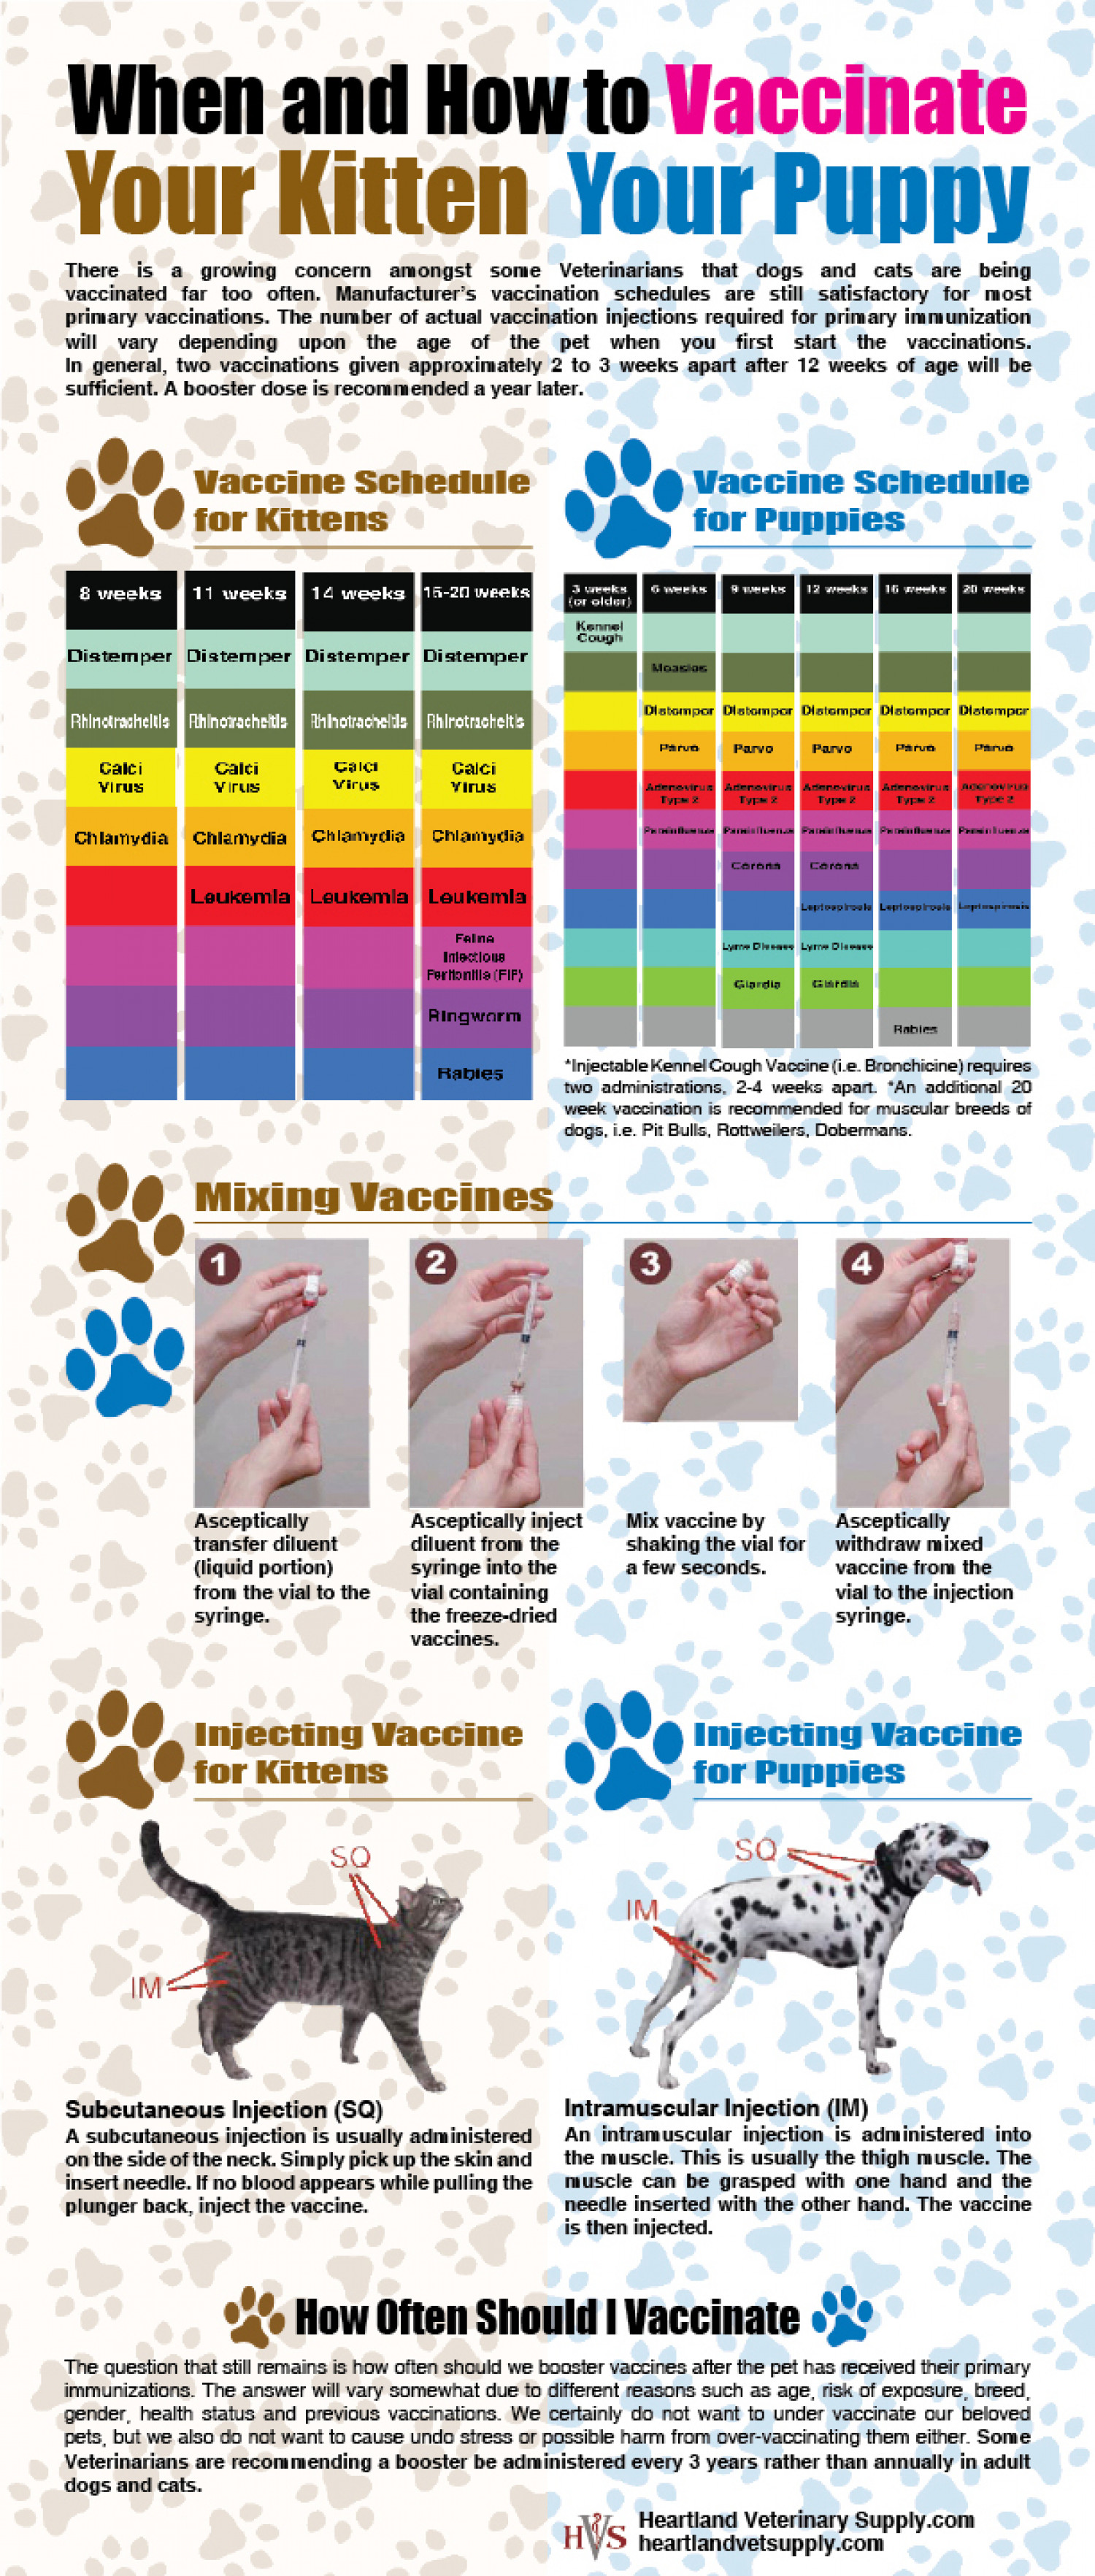 Vaccinating Your Kitten and Puppy Infographic